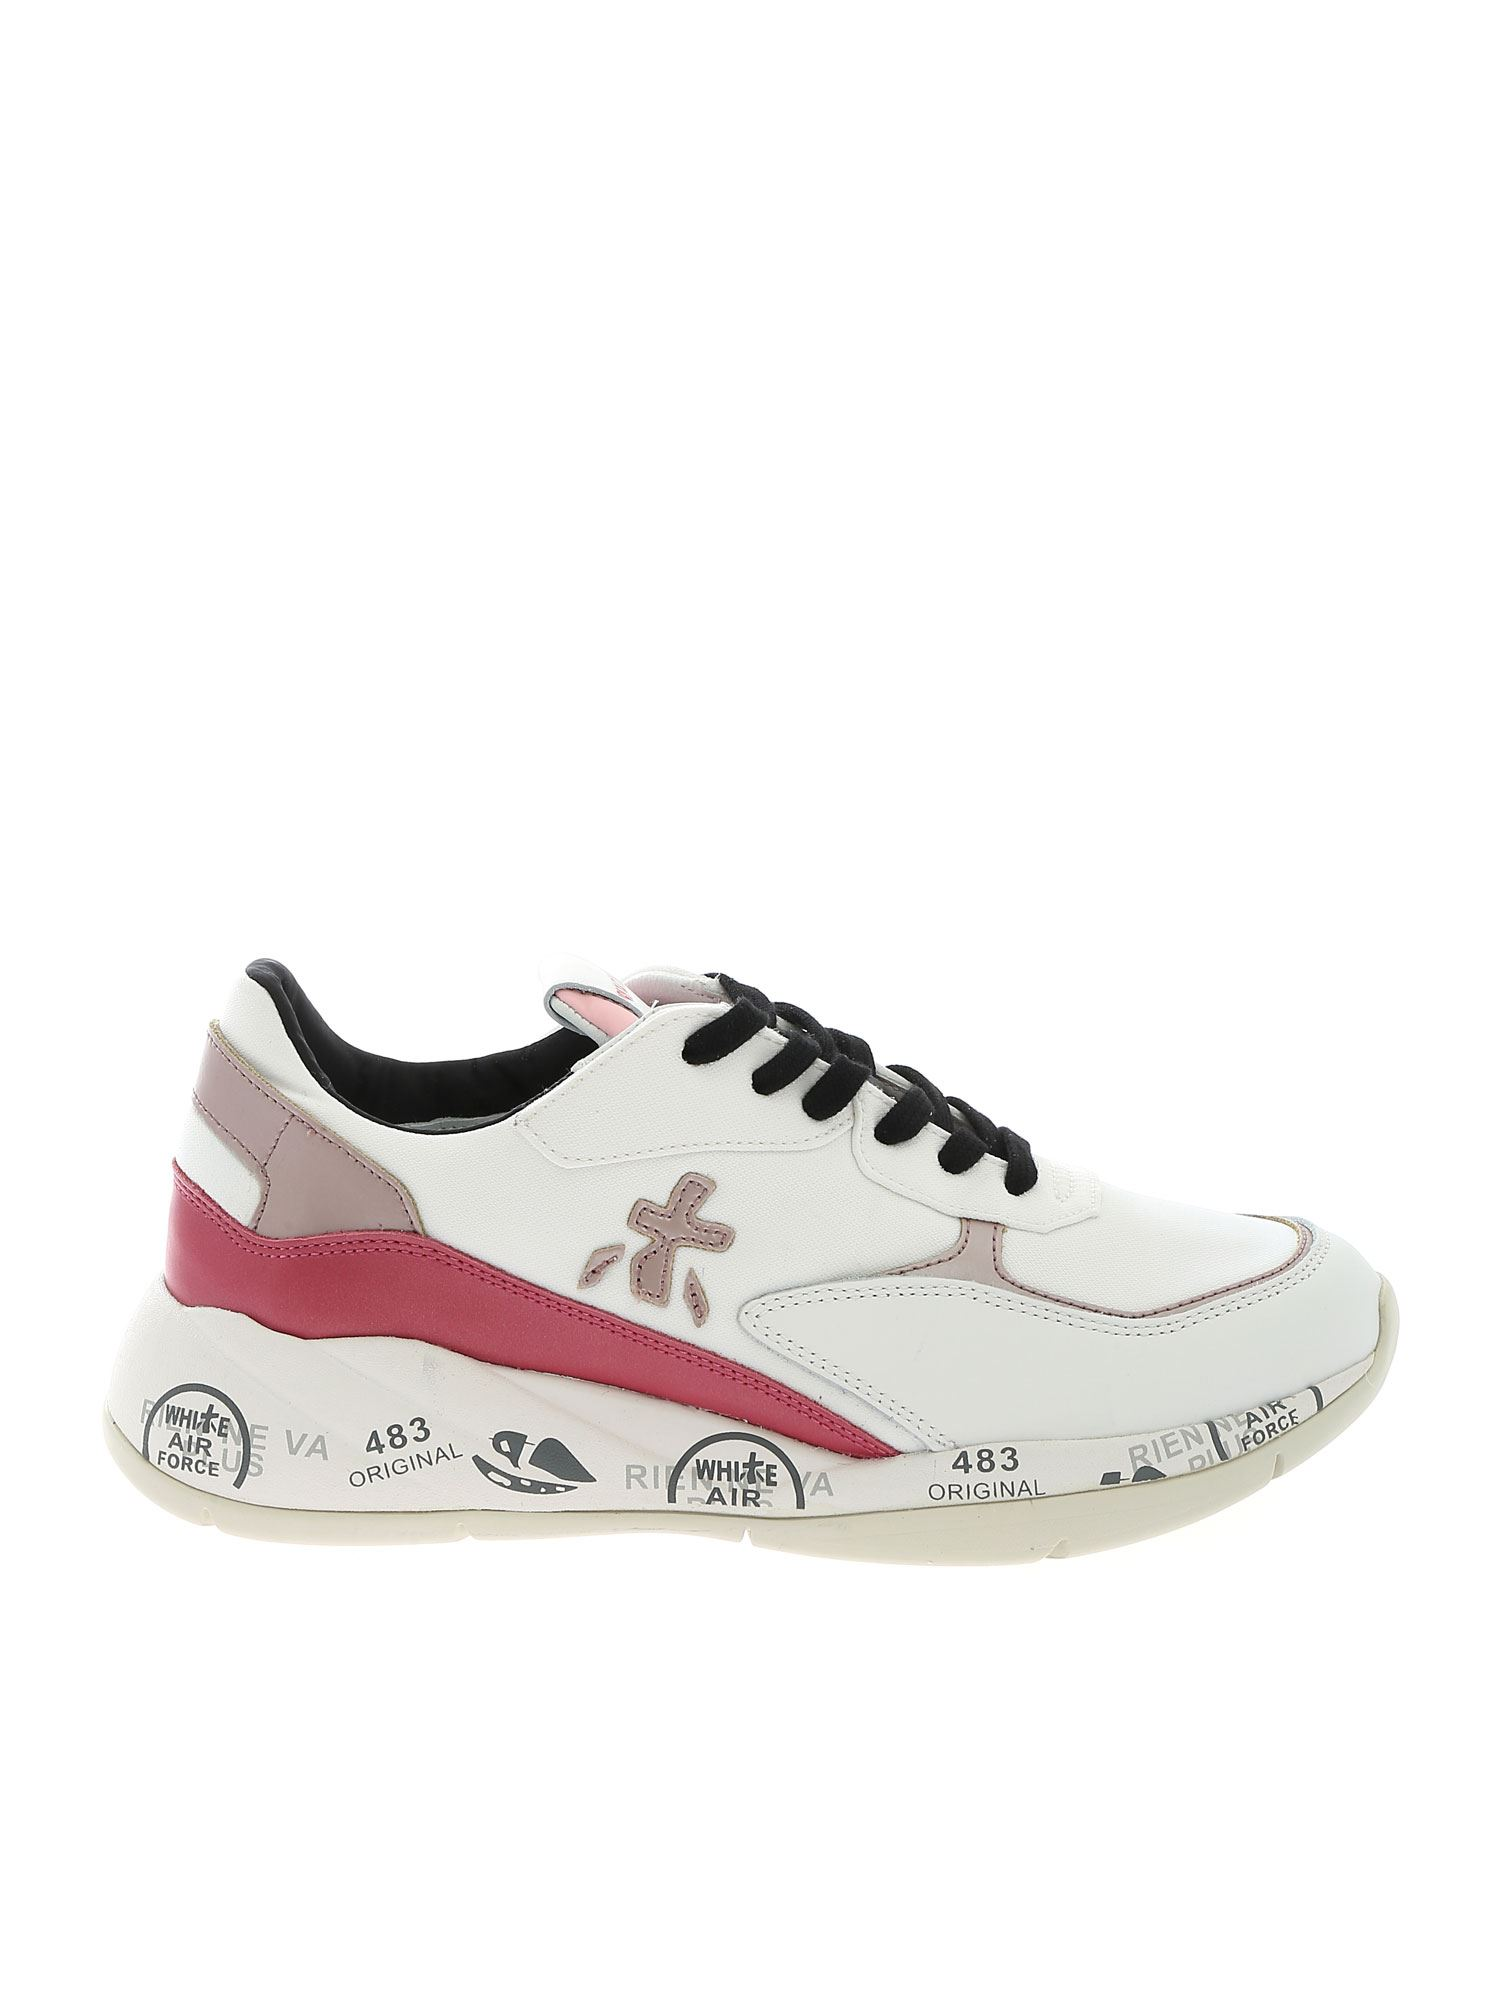 Premiata SCARLETT SNEAKERS IN WHITE AND PINK